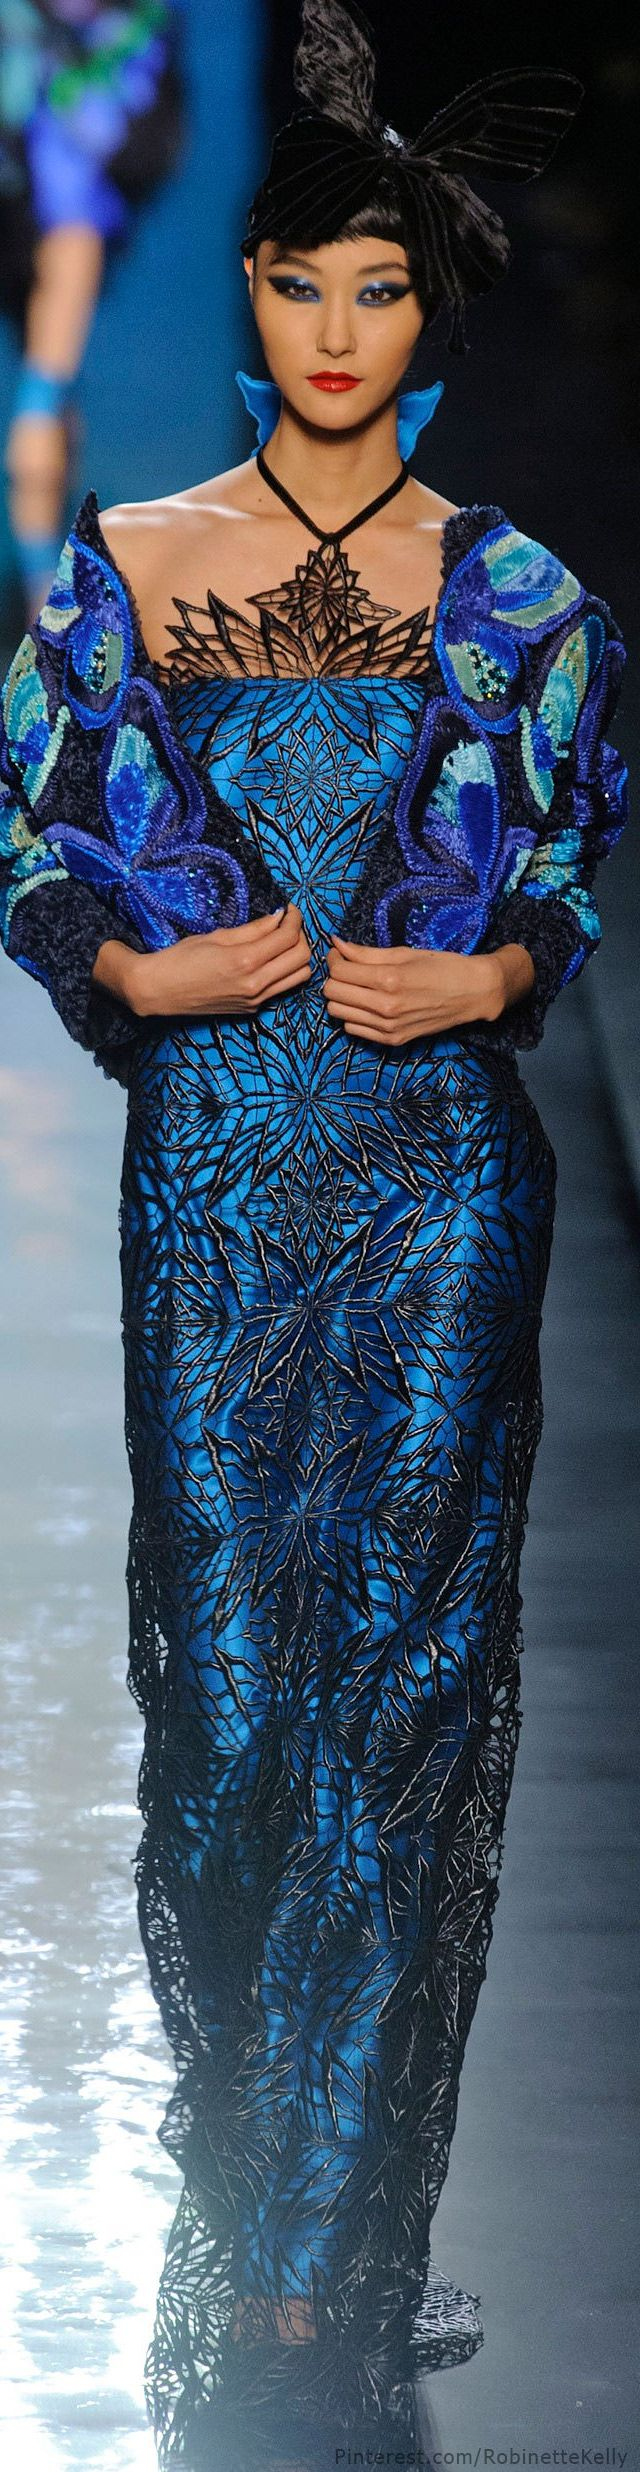 Peacock and Butterfly dress. Jean Paul Gaultier Haute Couture | S/S 2014